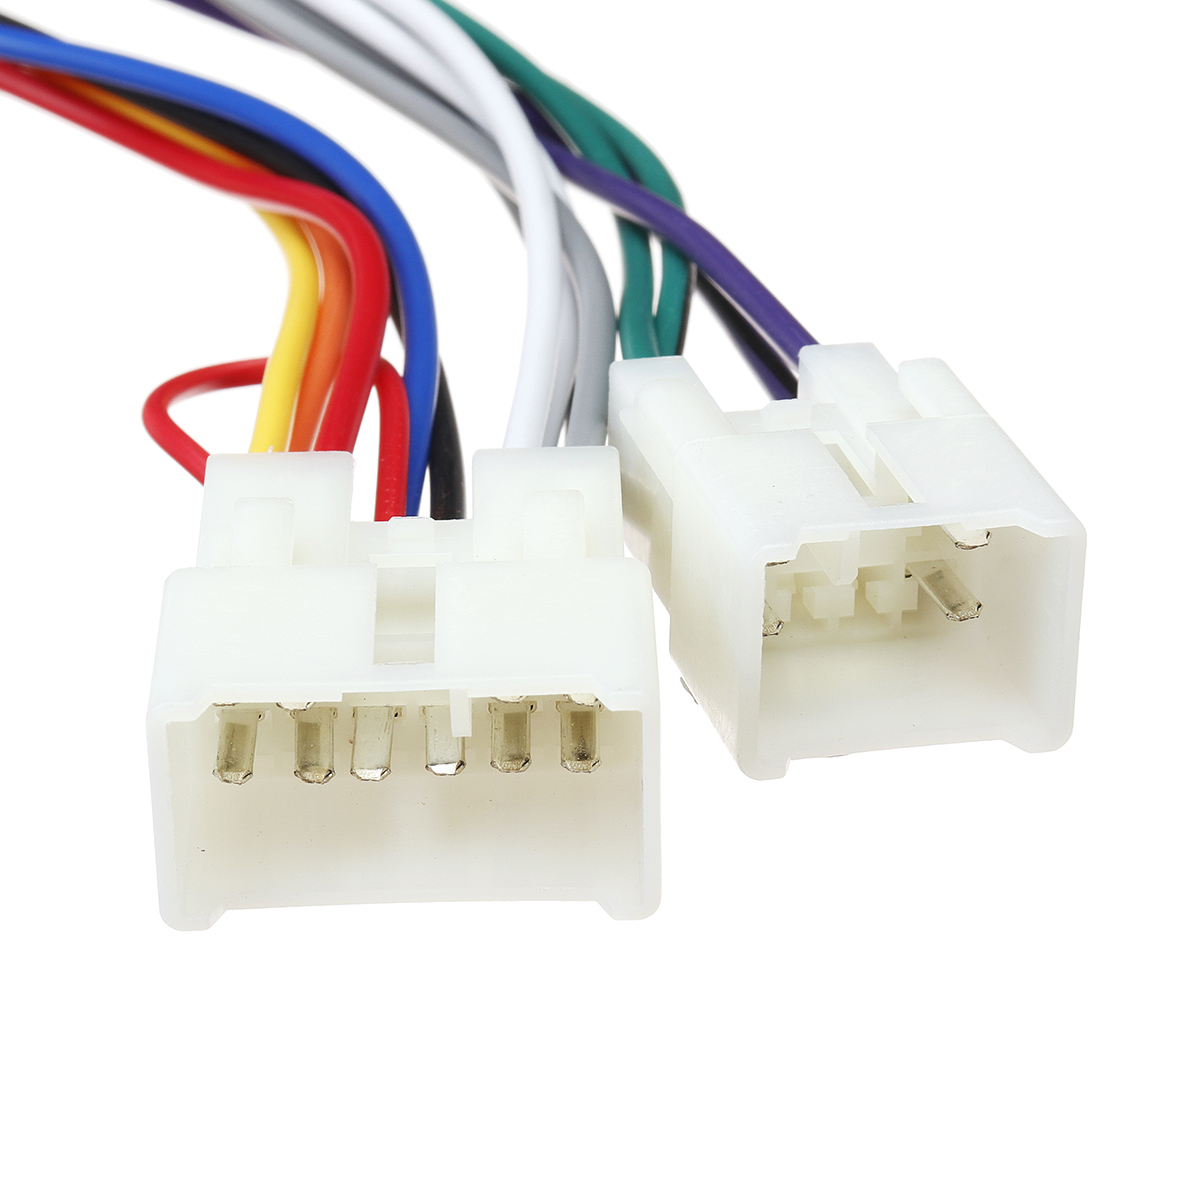 toyota wiring harness iso wiring harness stereo radio plug lead wire loom connector toyota wiring harness class action suit stereo radio plug lead wire loom